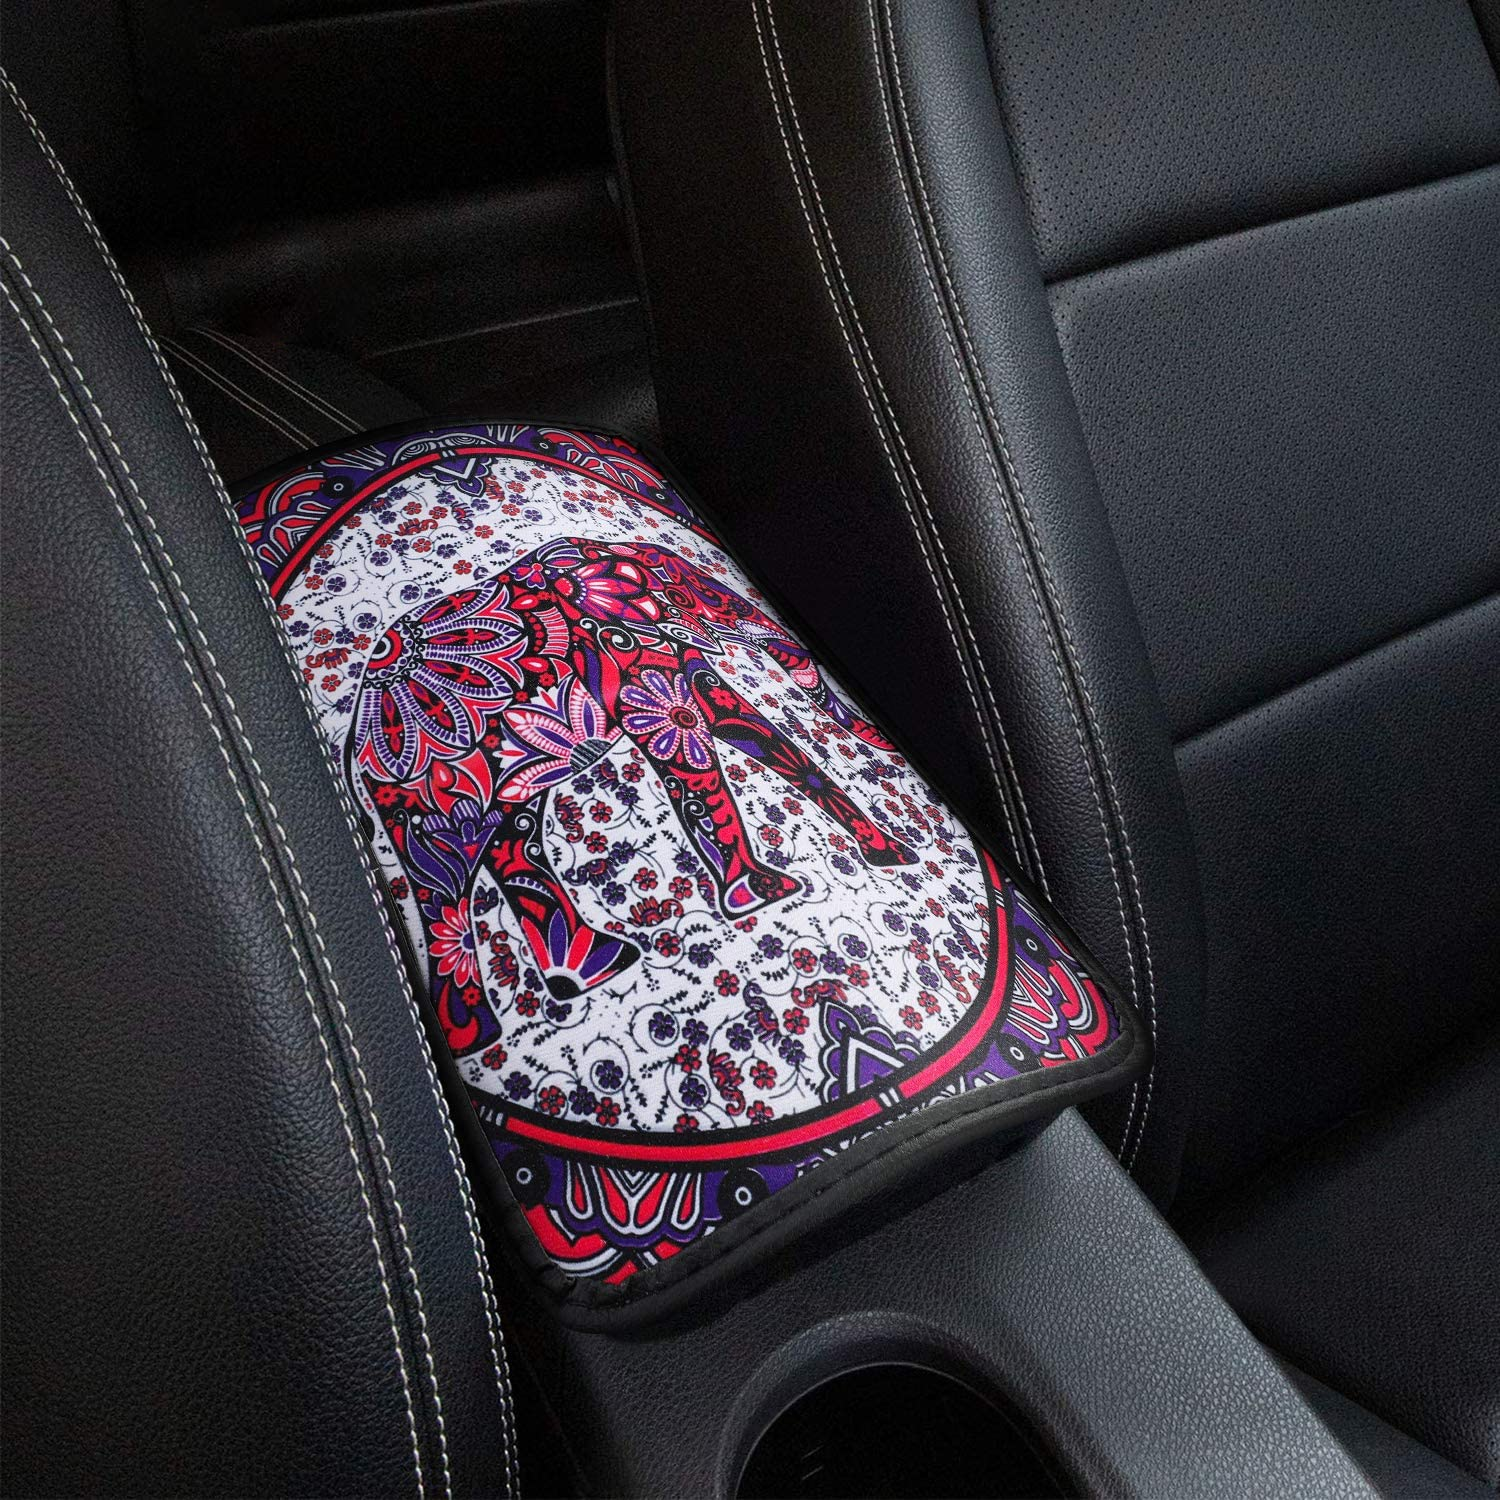 Mioloe Elephant Car Armrest Cover, Universal Auto Center Console Pad, Fit Soft Comfort Armrest Seat Box Cover Protector Fit for SUV/Truck/Car, Stylish Pattern Printed Console Cover Pad